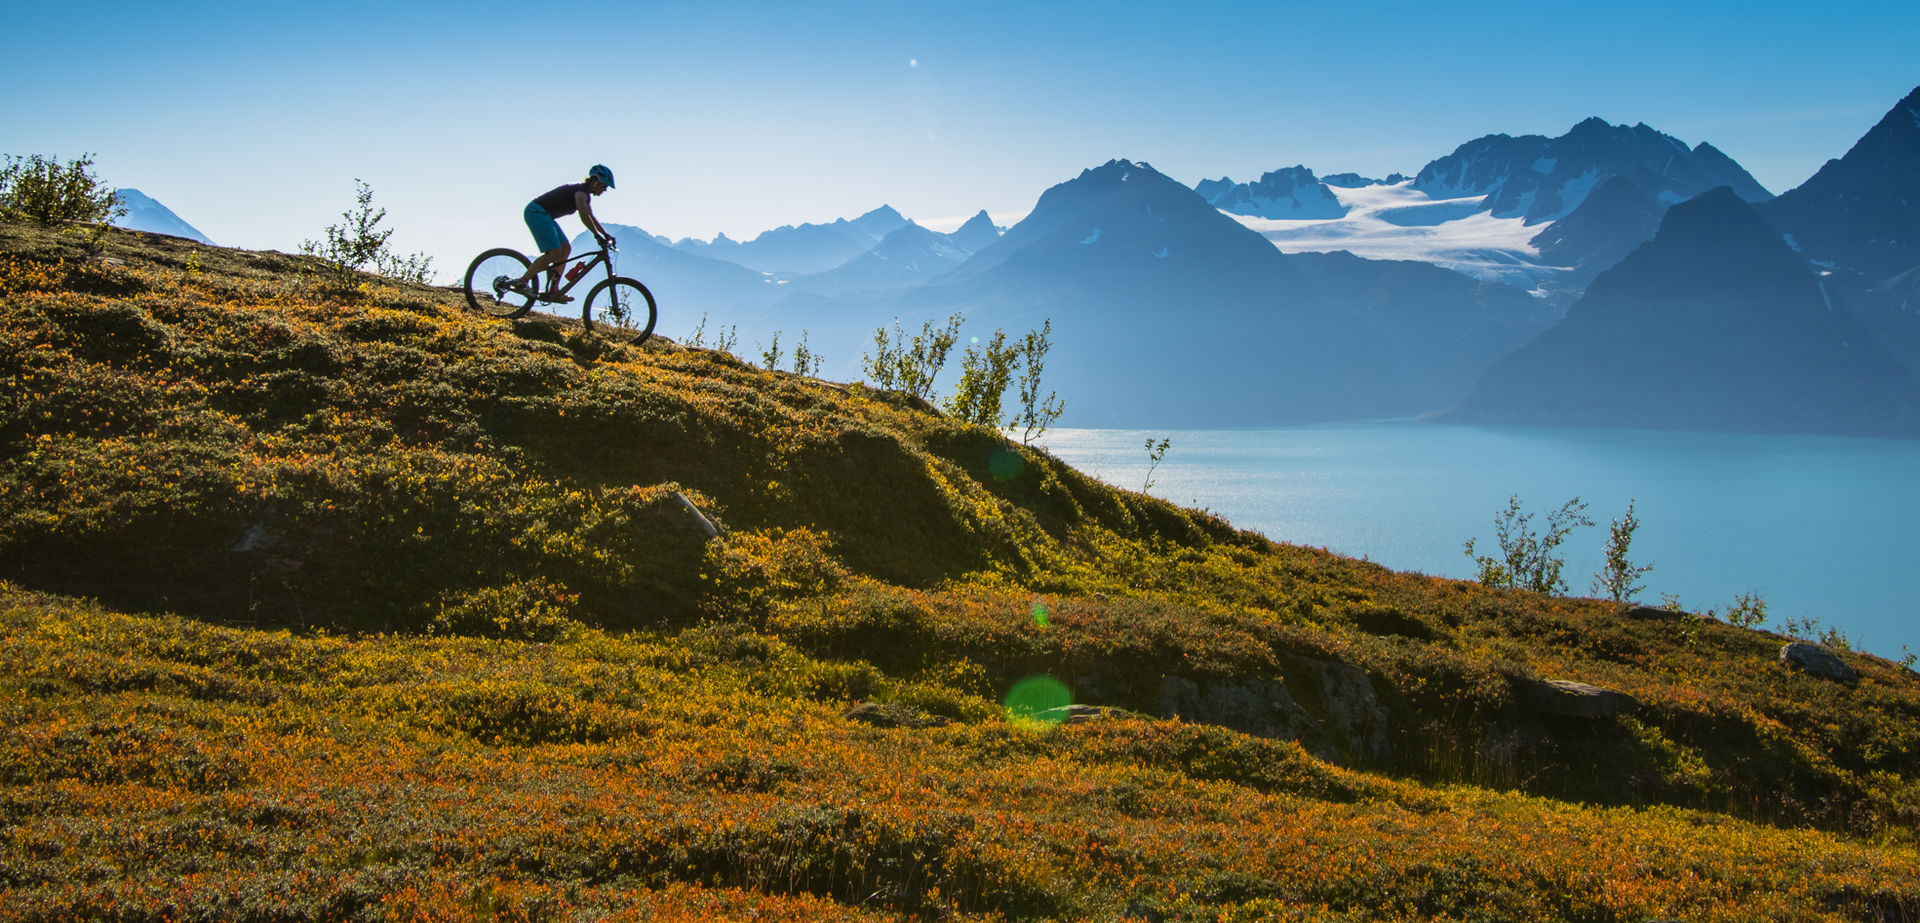 Summer time offers cycling and hiking trips, all possible from stopping places on the roads © Anna Rieblova